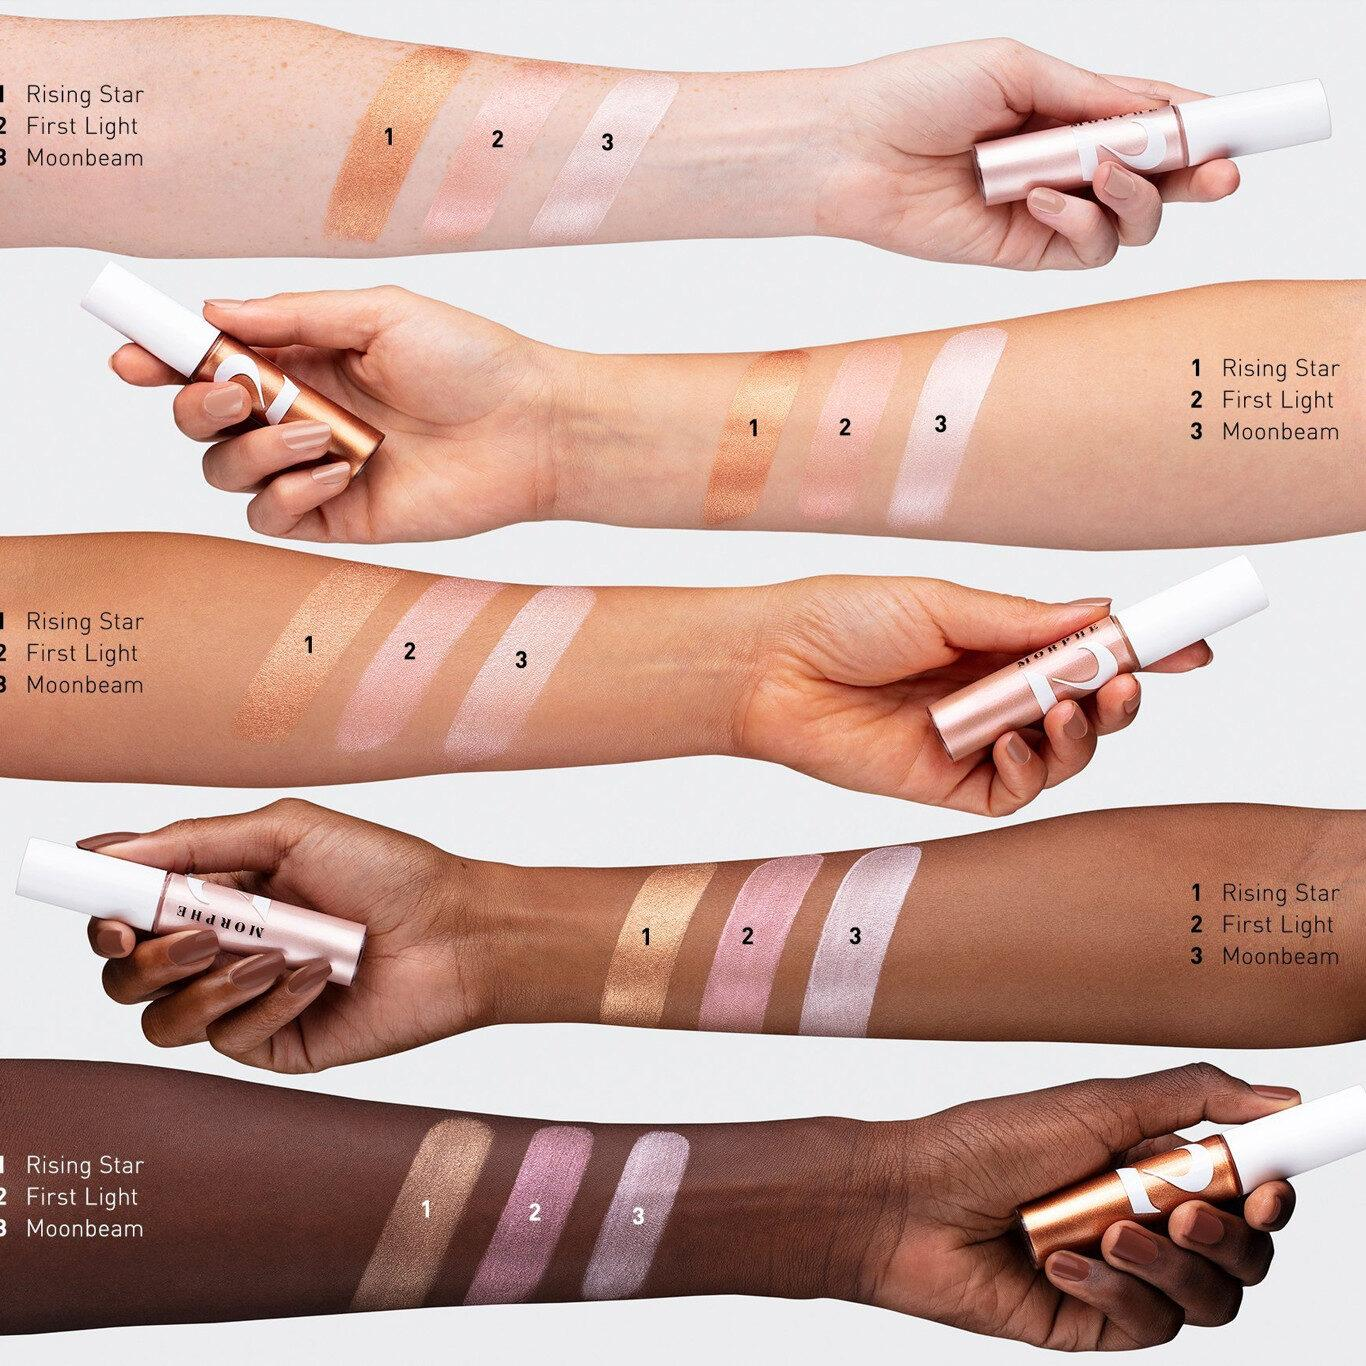 Morphe 2 Gleamcatcher Illuminator Arm Swatches